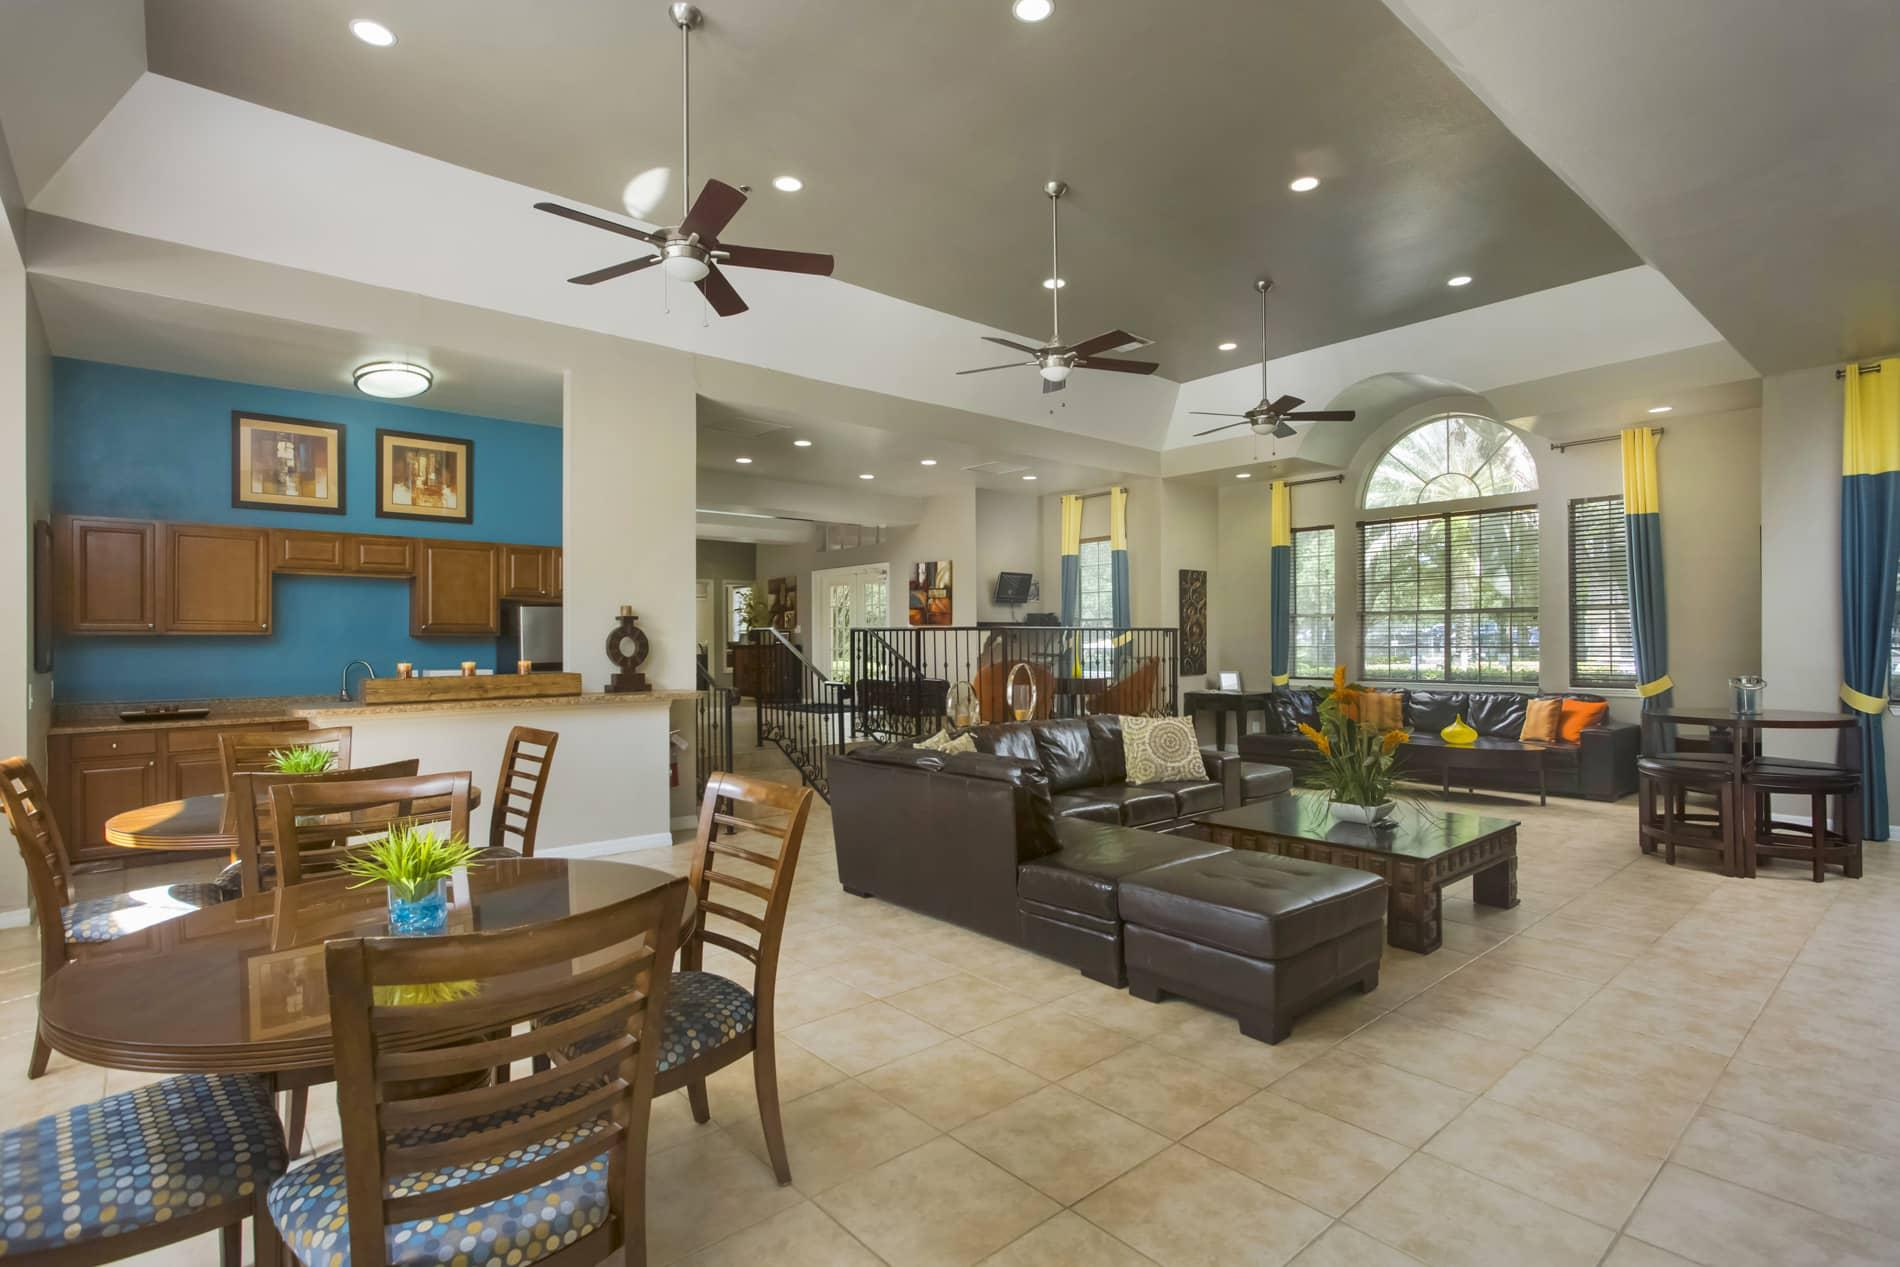 Los Altos Apartments Altamonte Springs